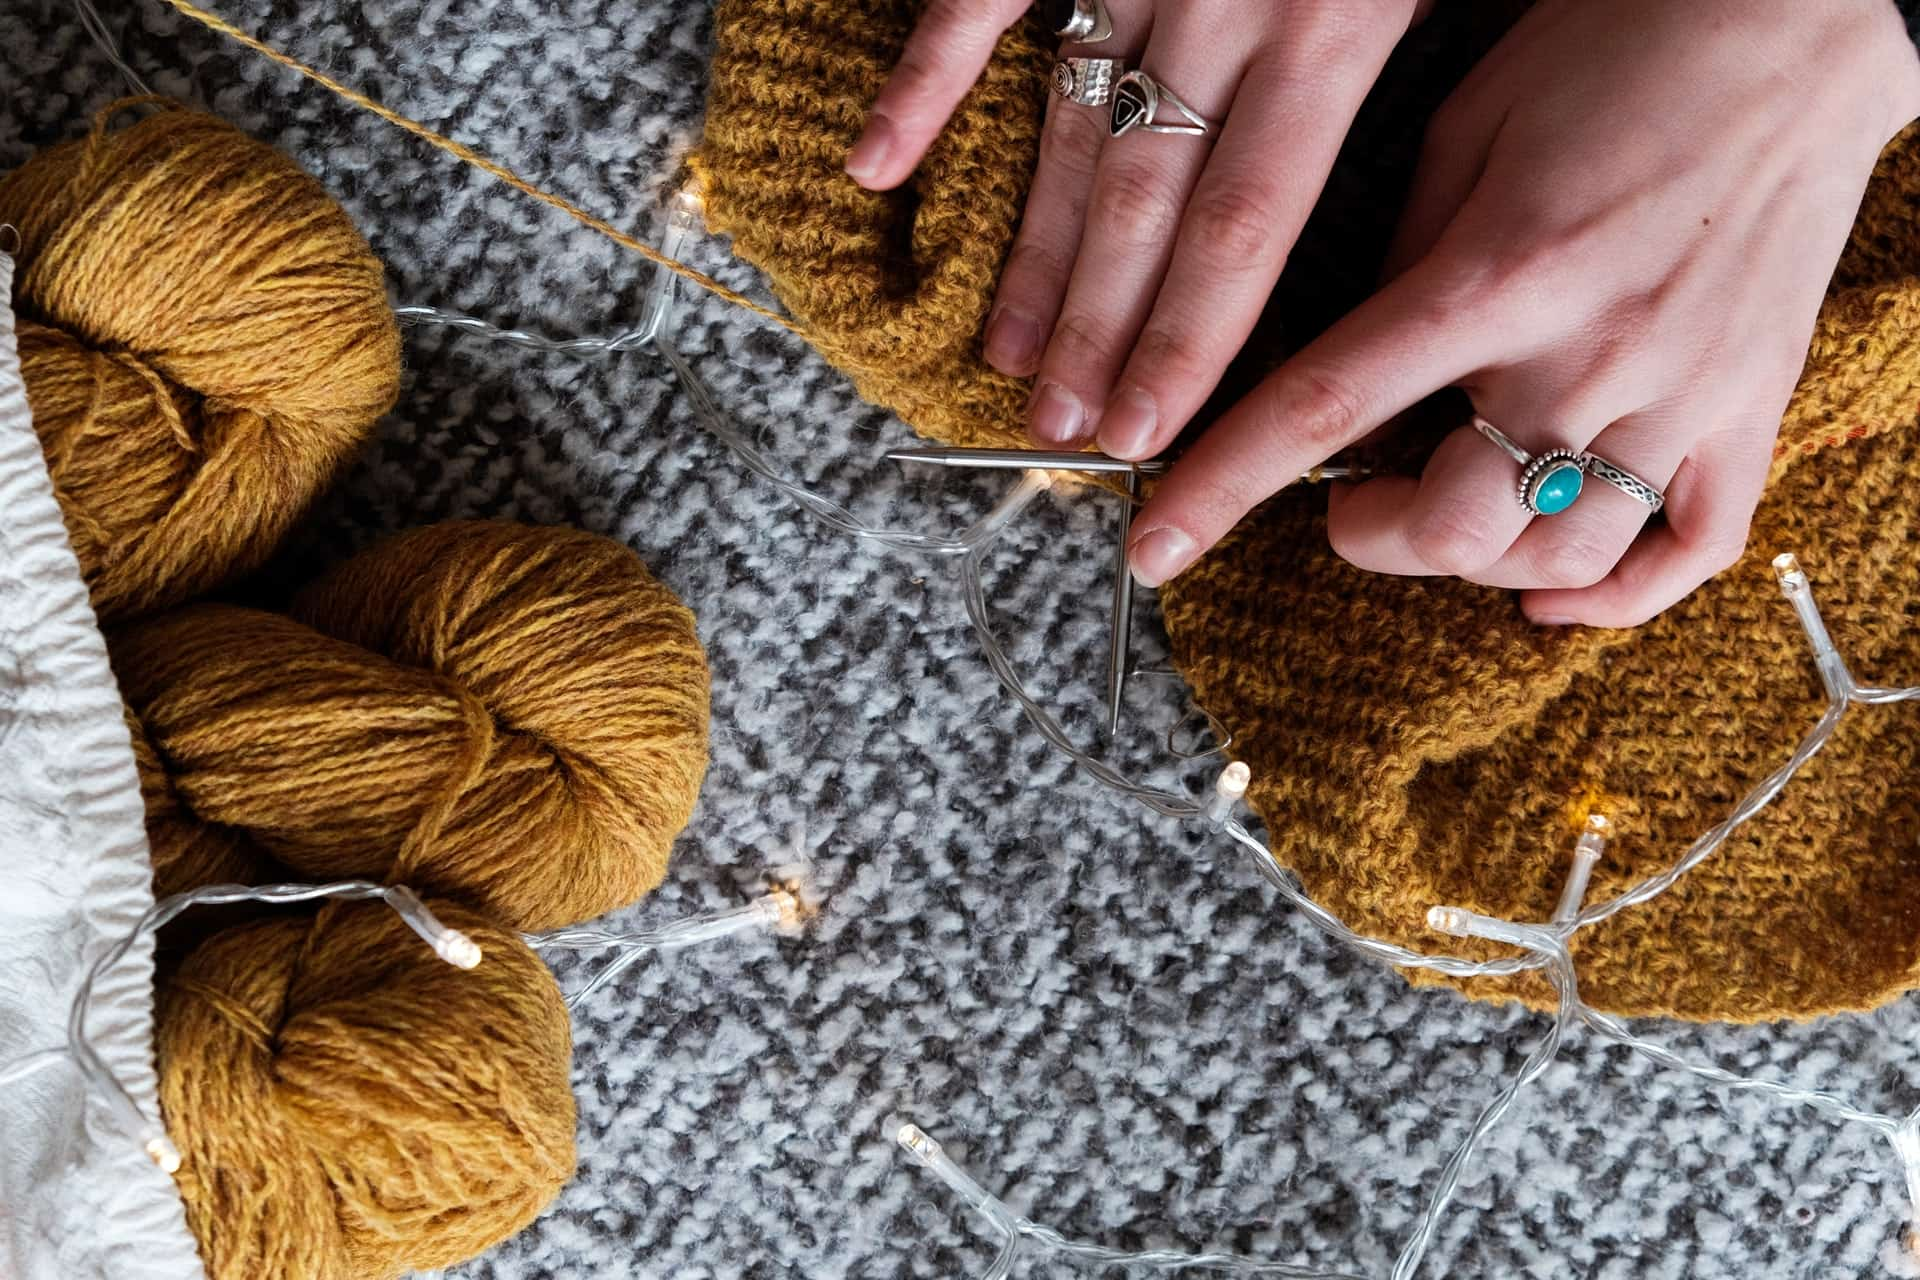 How Long Does It Take To Knit A Blanket?